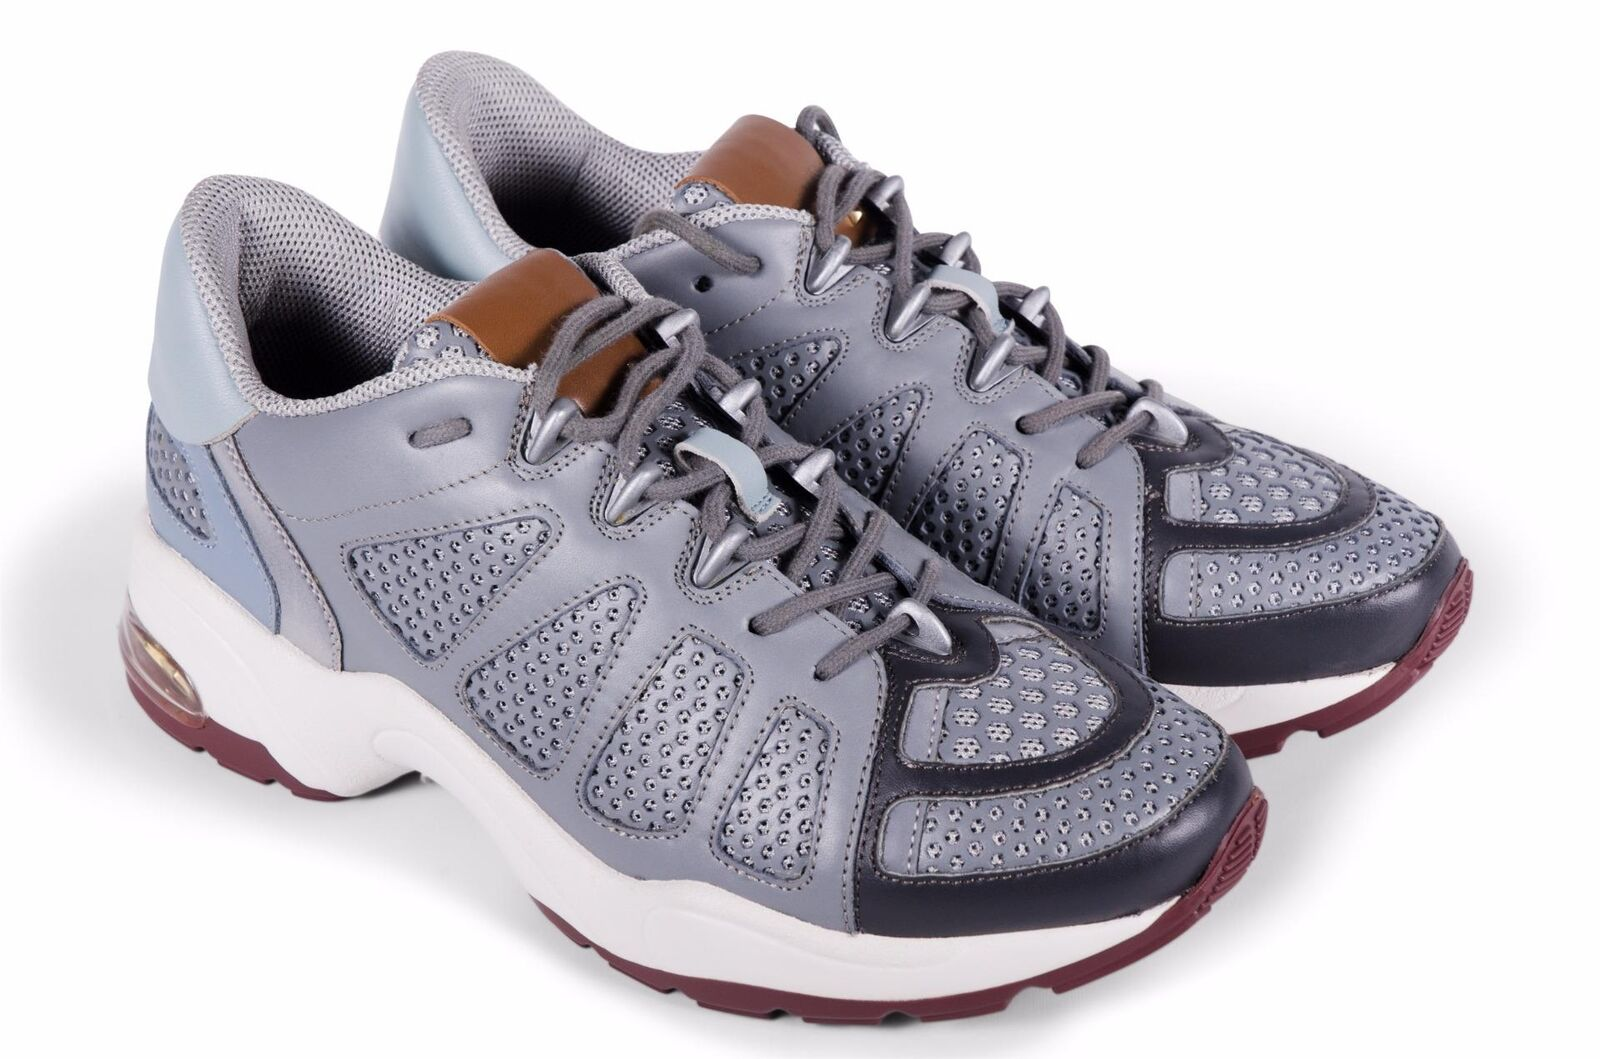 Valentino Men's shoes Fashion Sneakers Grey 8 UK 9 US 42 EU NEW